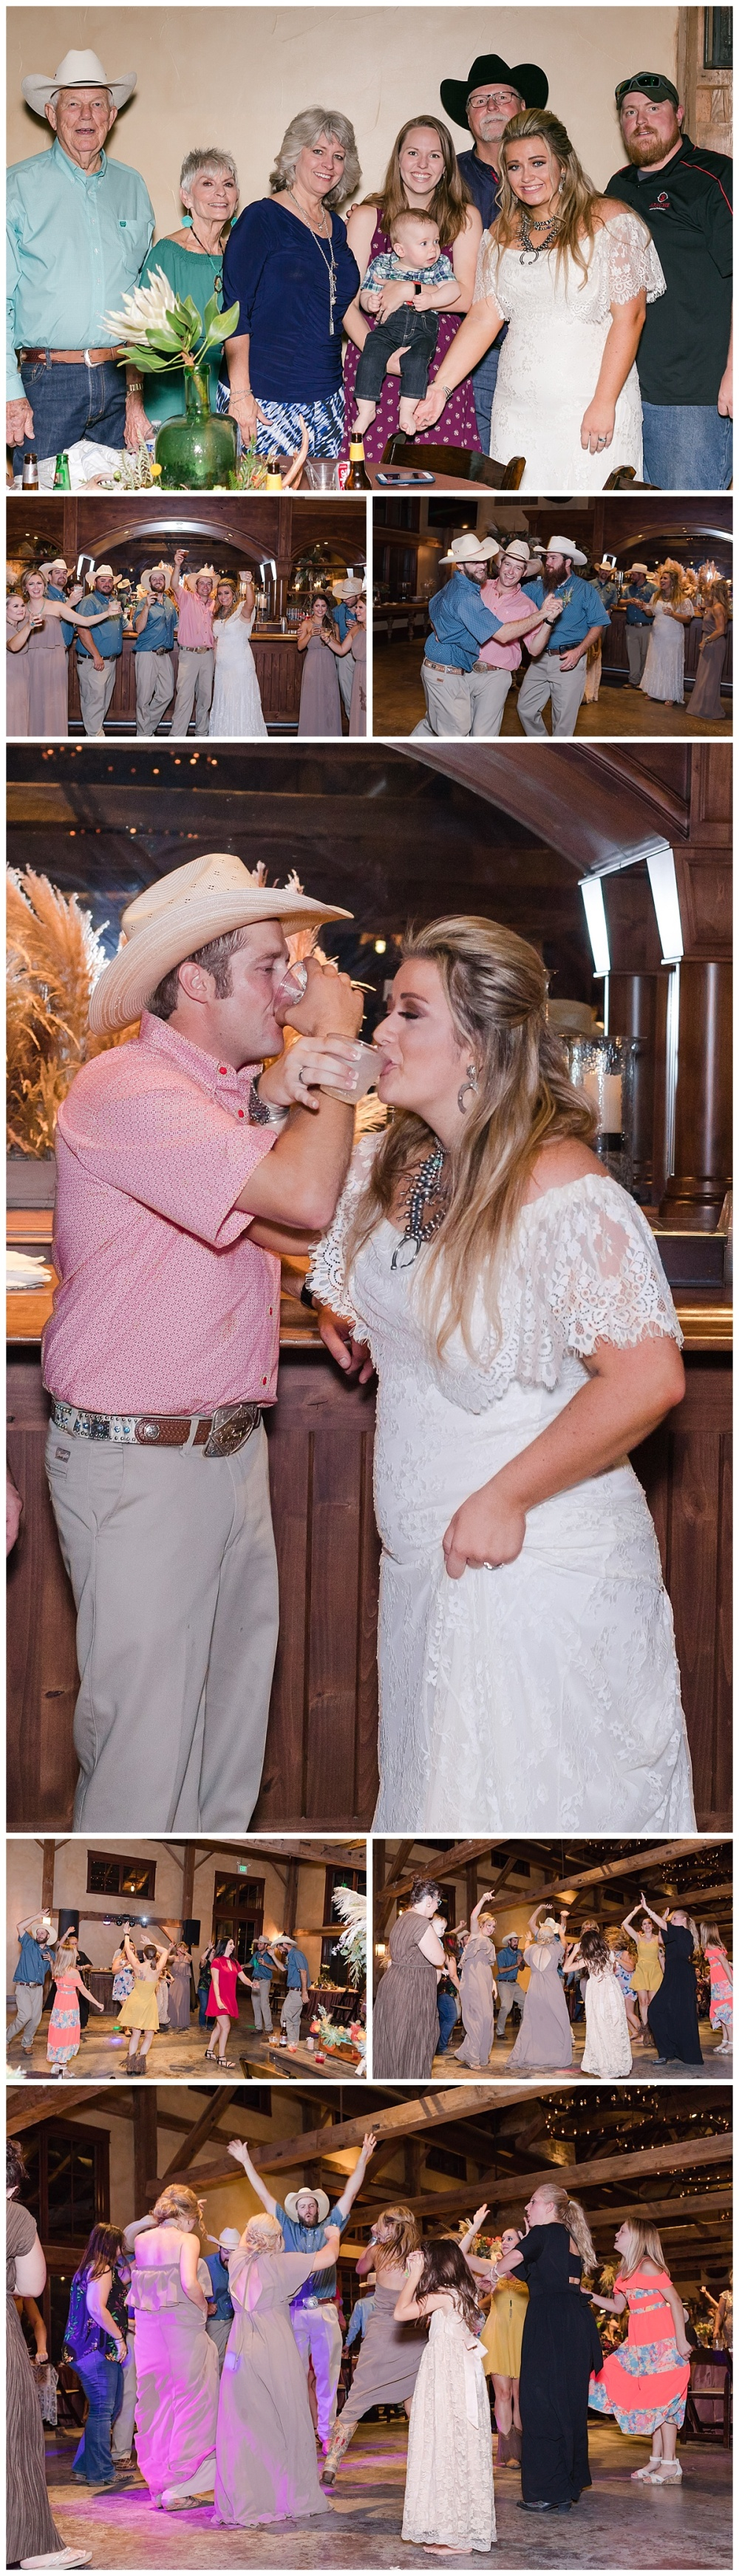 Texas-Wedding-Photographer-Braded-T-Ranch-Kendalia-Bride-Groom-Southwestern-Style-Carly-Barton-Photography-Vogt_0076.jpg